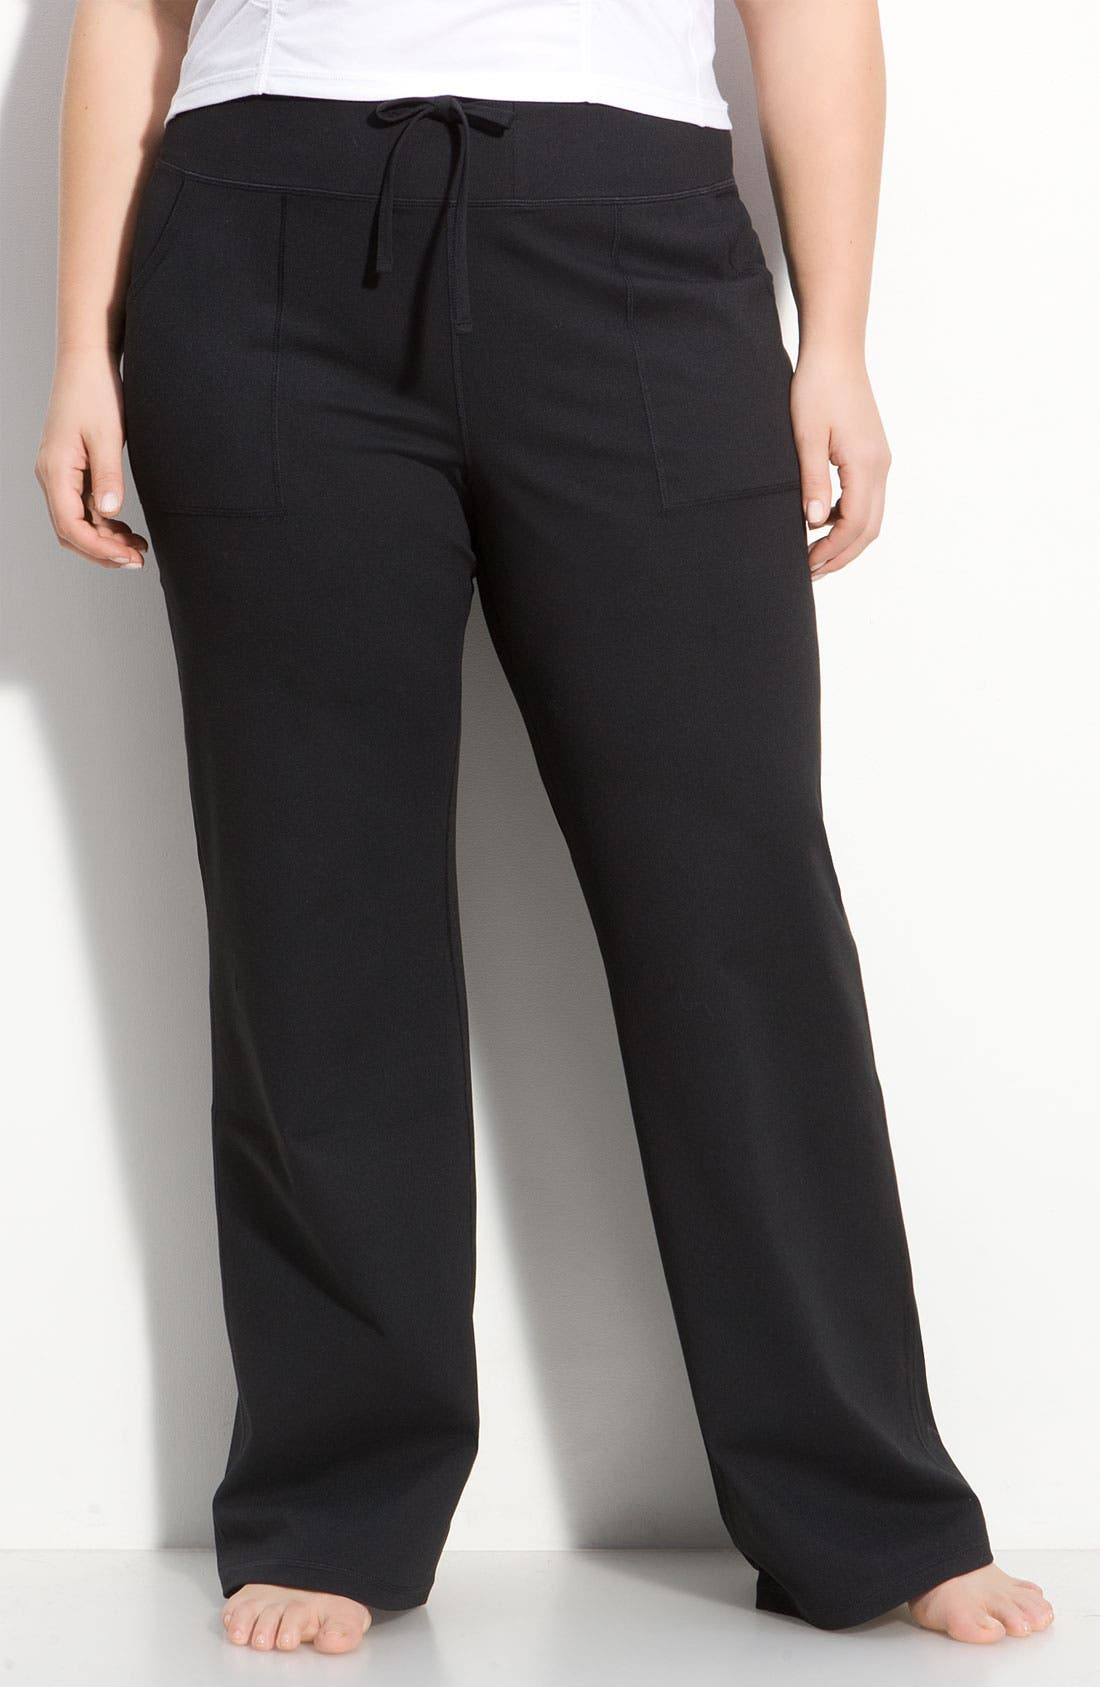 Alternate Image 1 Selected - Zella 'Soul' Wide Leg Pants (Plus)